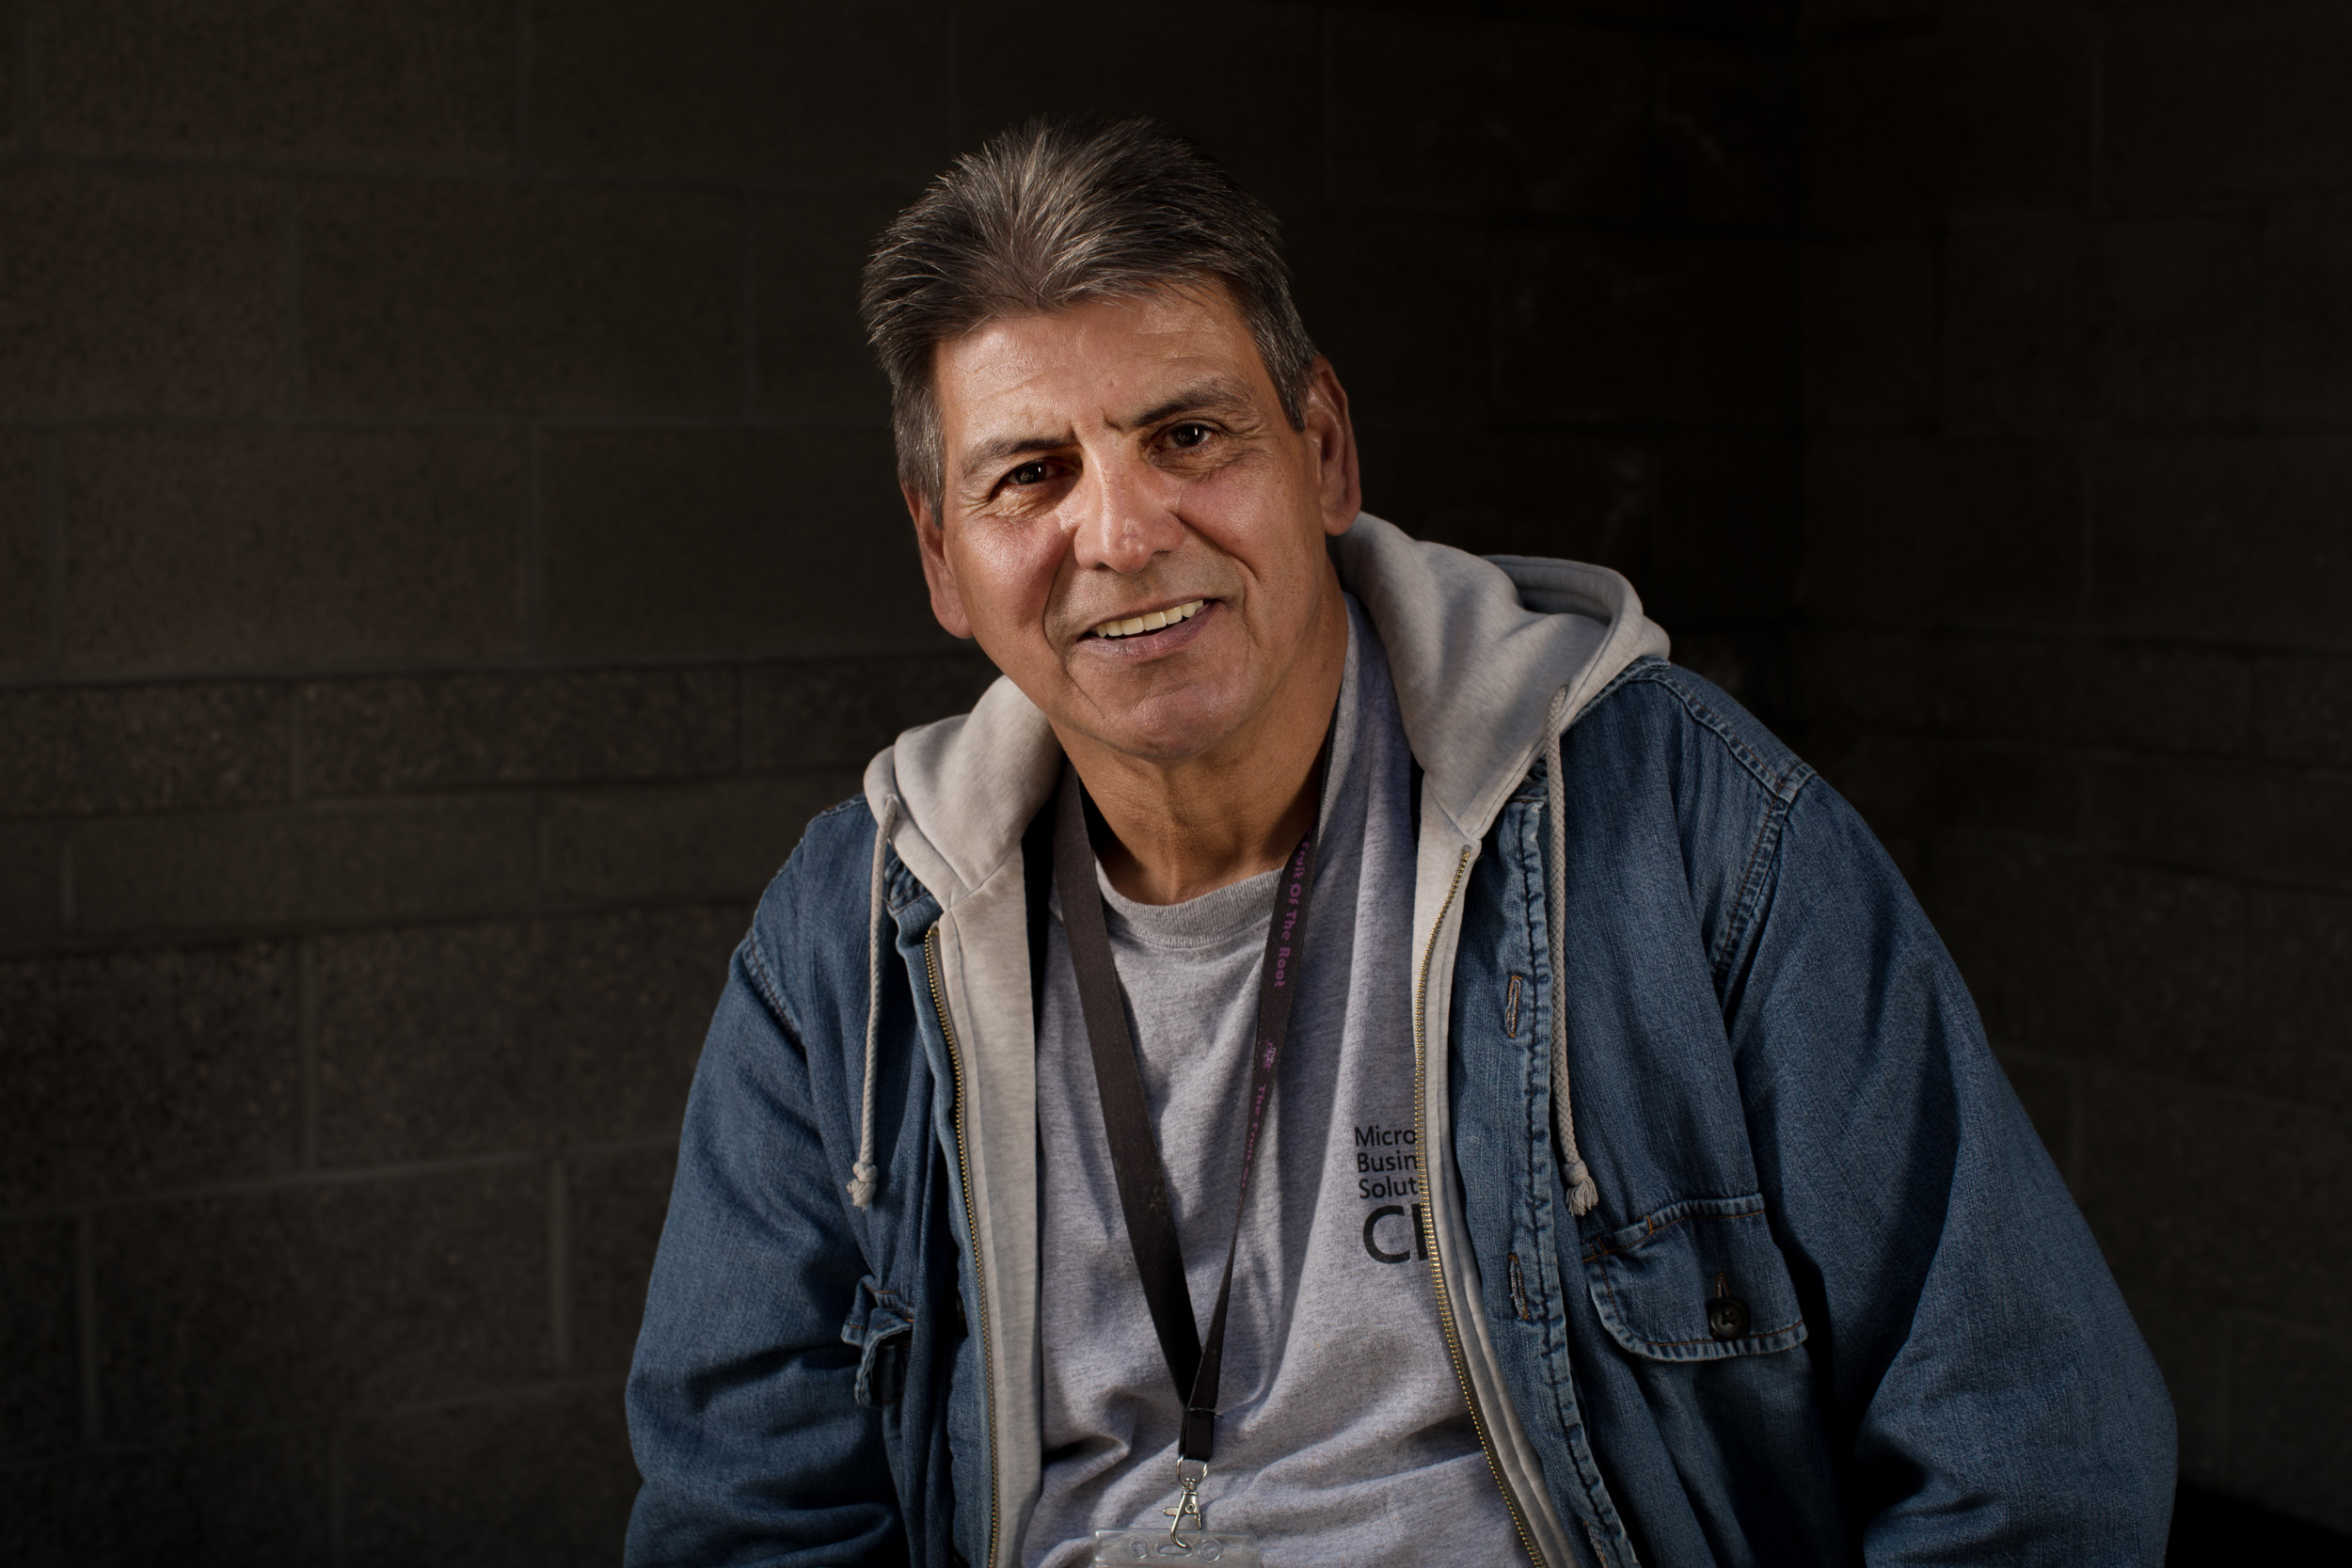 Carlos Espejel at Salvation Army William Booth Center in Seattle, May 24, 2018.